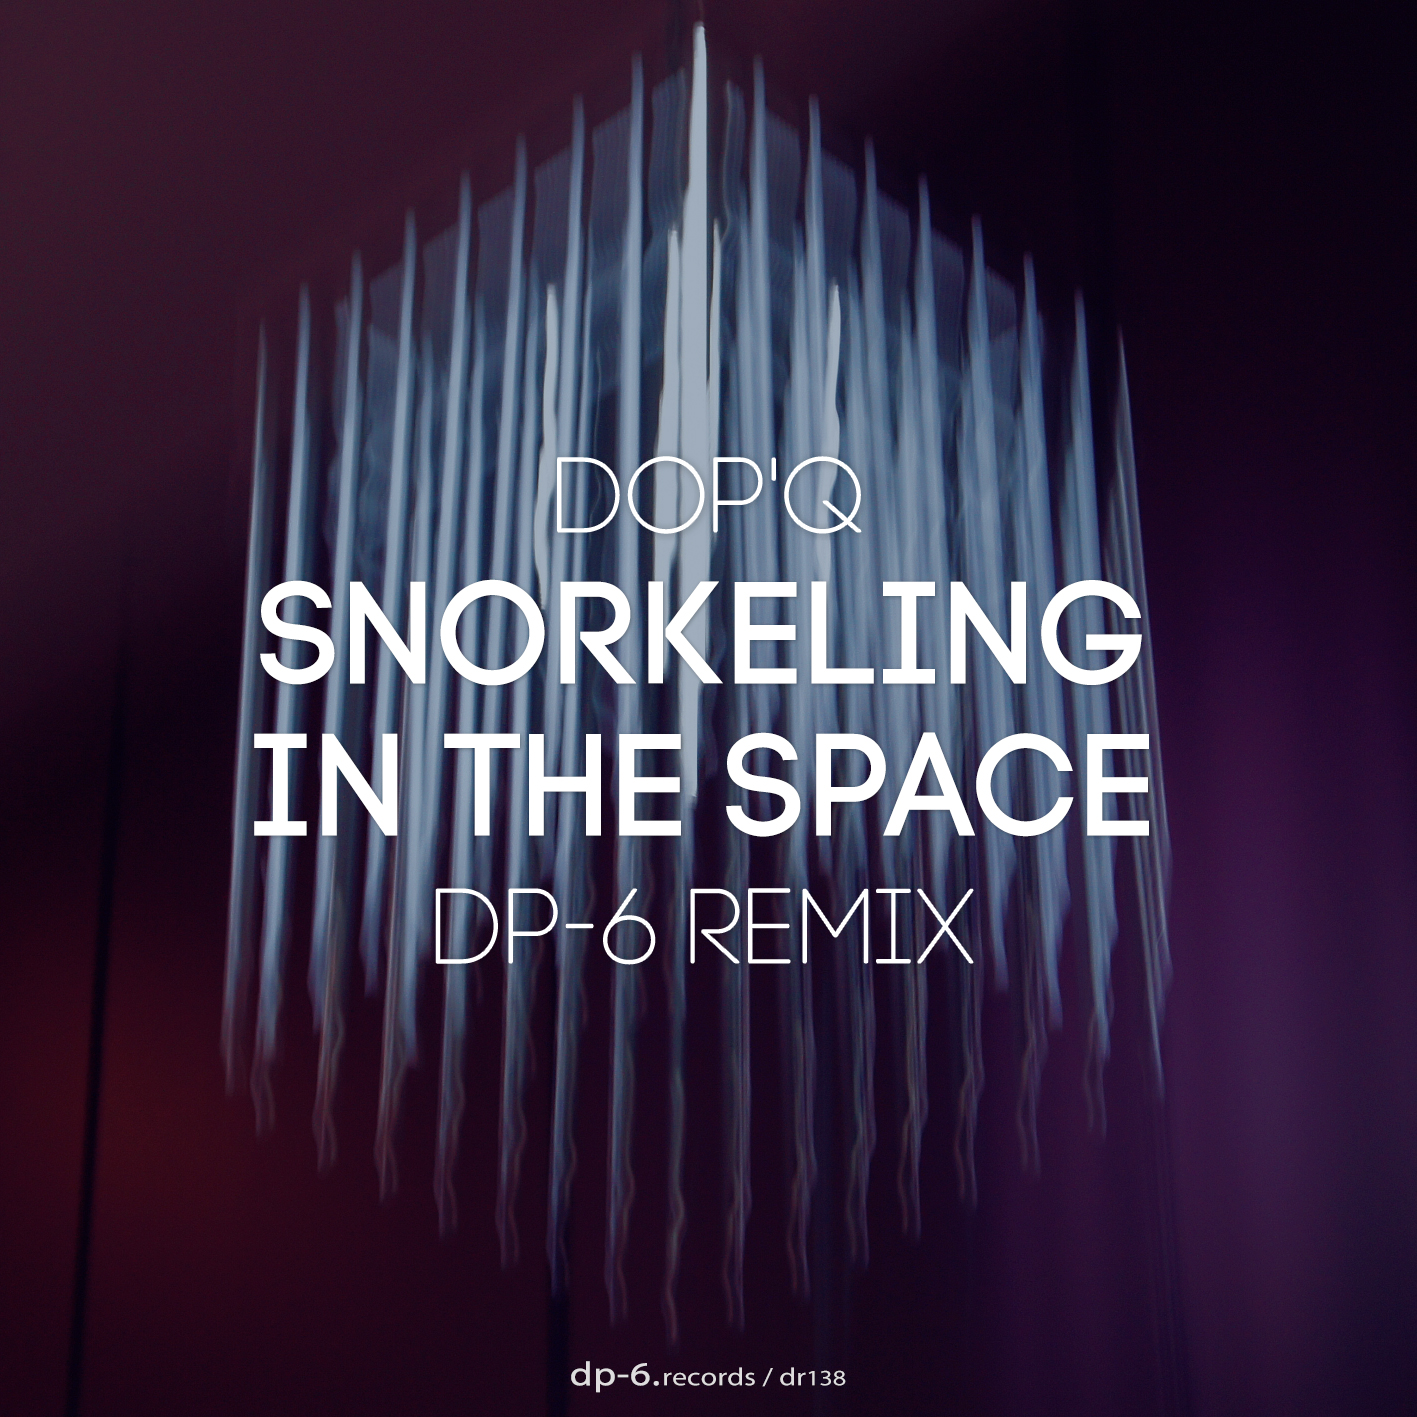 DR138 Dop'q: Snorkeling in the space (DP-6 remix)